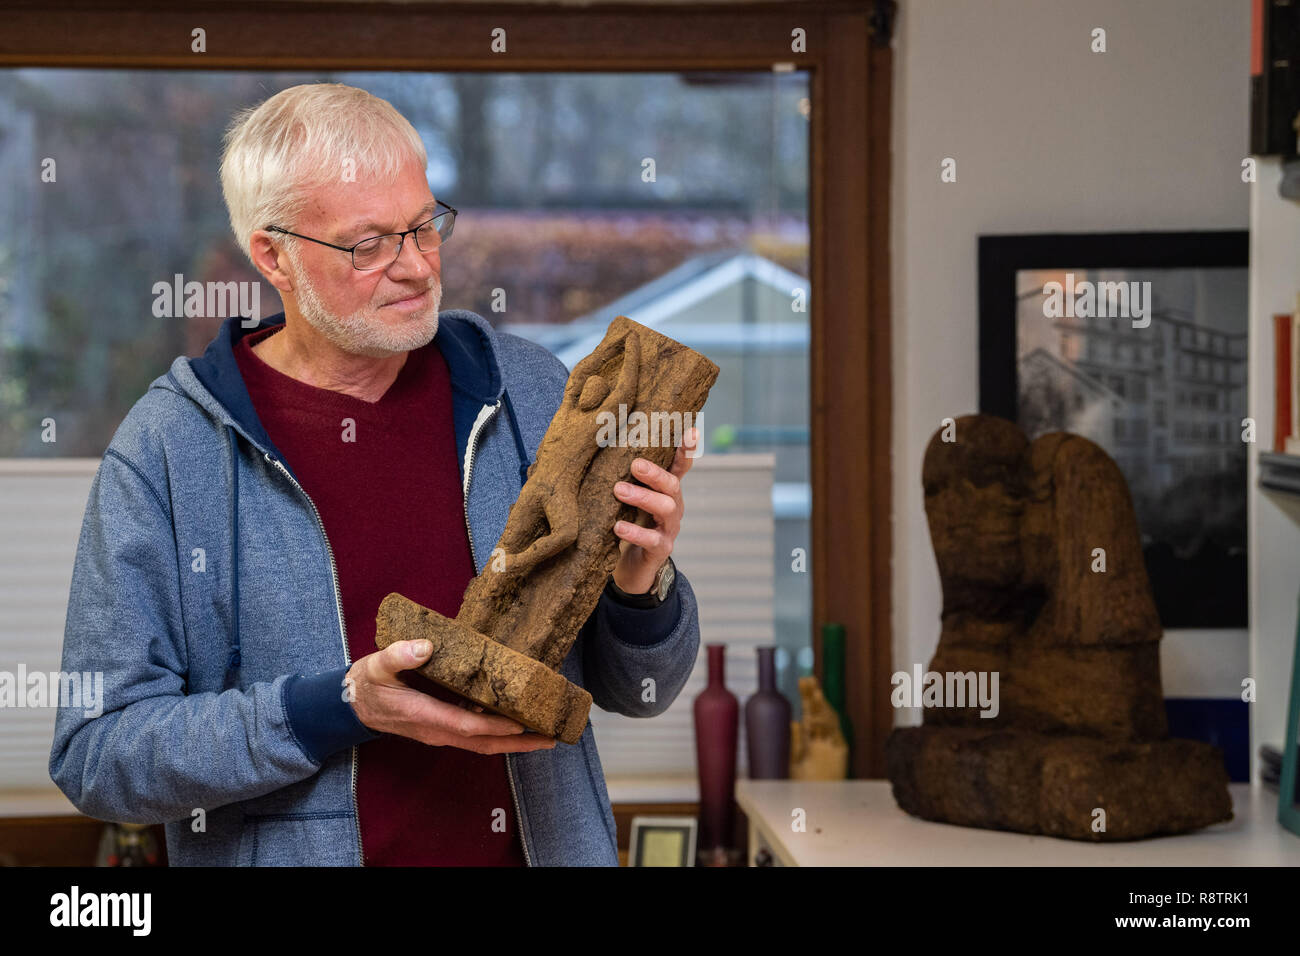 Saterland, Germany. 22nd Nov, 2018. Karl-Heinz Brinkmann holds the figure 'The Dancer' carved from peat in his hands in his home workshop. The 64 year old Saterland artist works with many materials. But the dried white peat is special: it is 2000 years old. Credit: Mohssen Assanimoghaddam/dpa/Alamy Live News - Stock Image